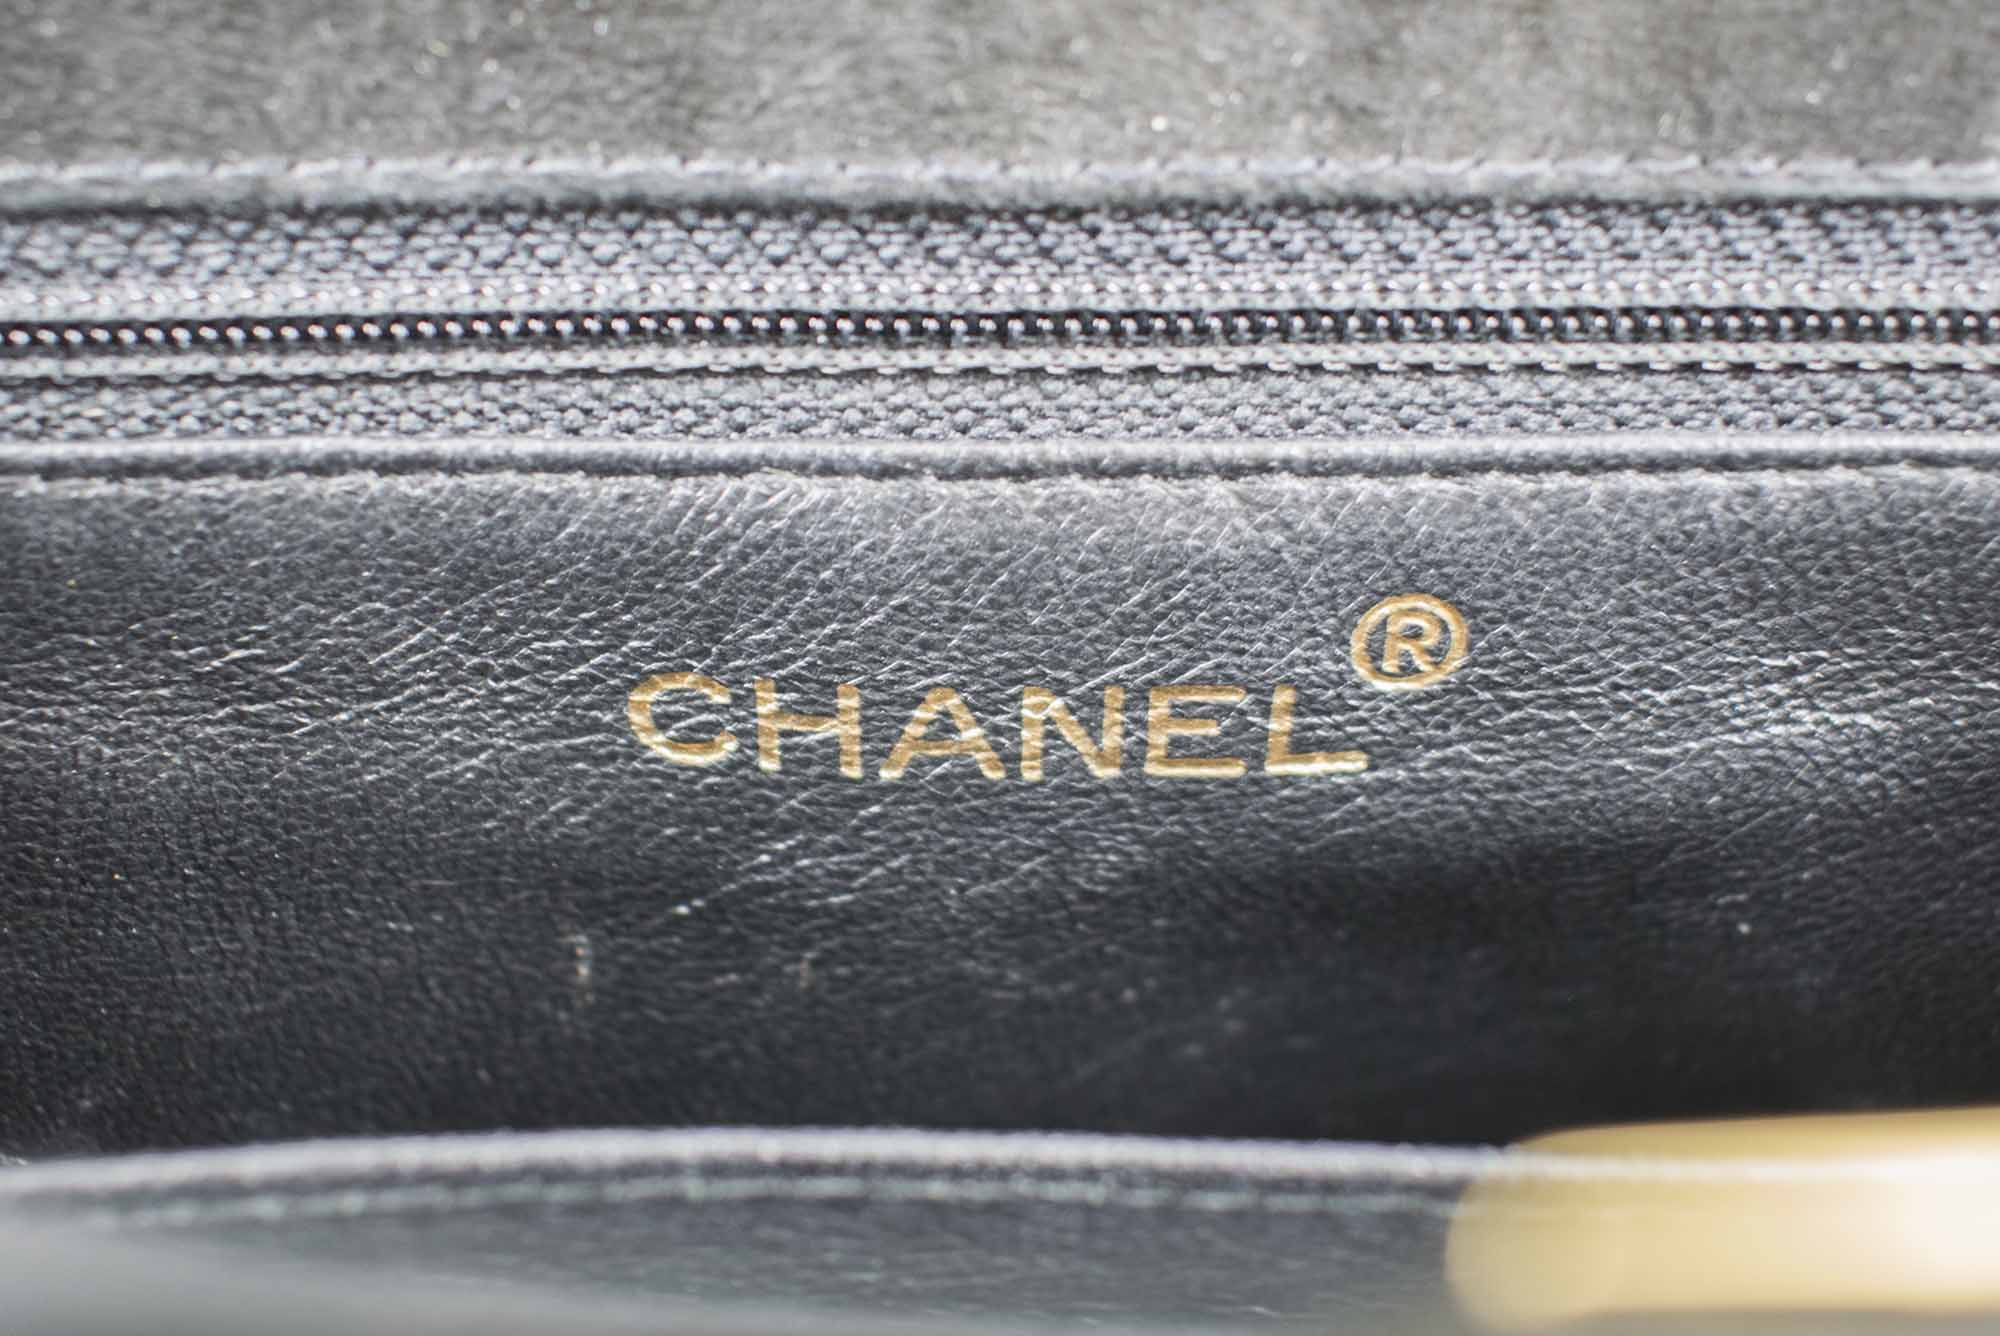 b93e0b47a2ffc6 CHANEL VINTAGE TRAPEZE SHAPE BAG, black suede quilted pattern with two top  handles, black leather interior, iconic interlocked CC lock, gold tone  hardware ...